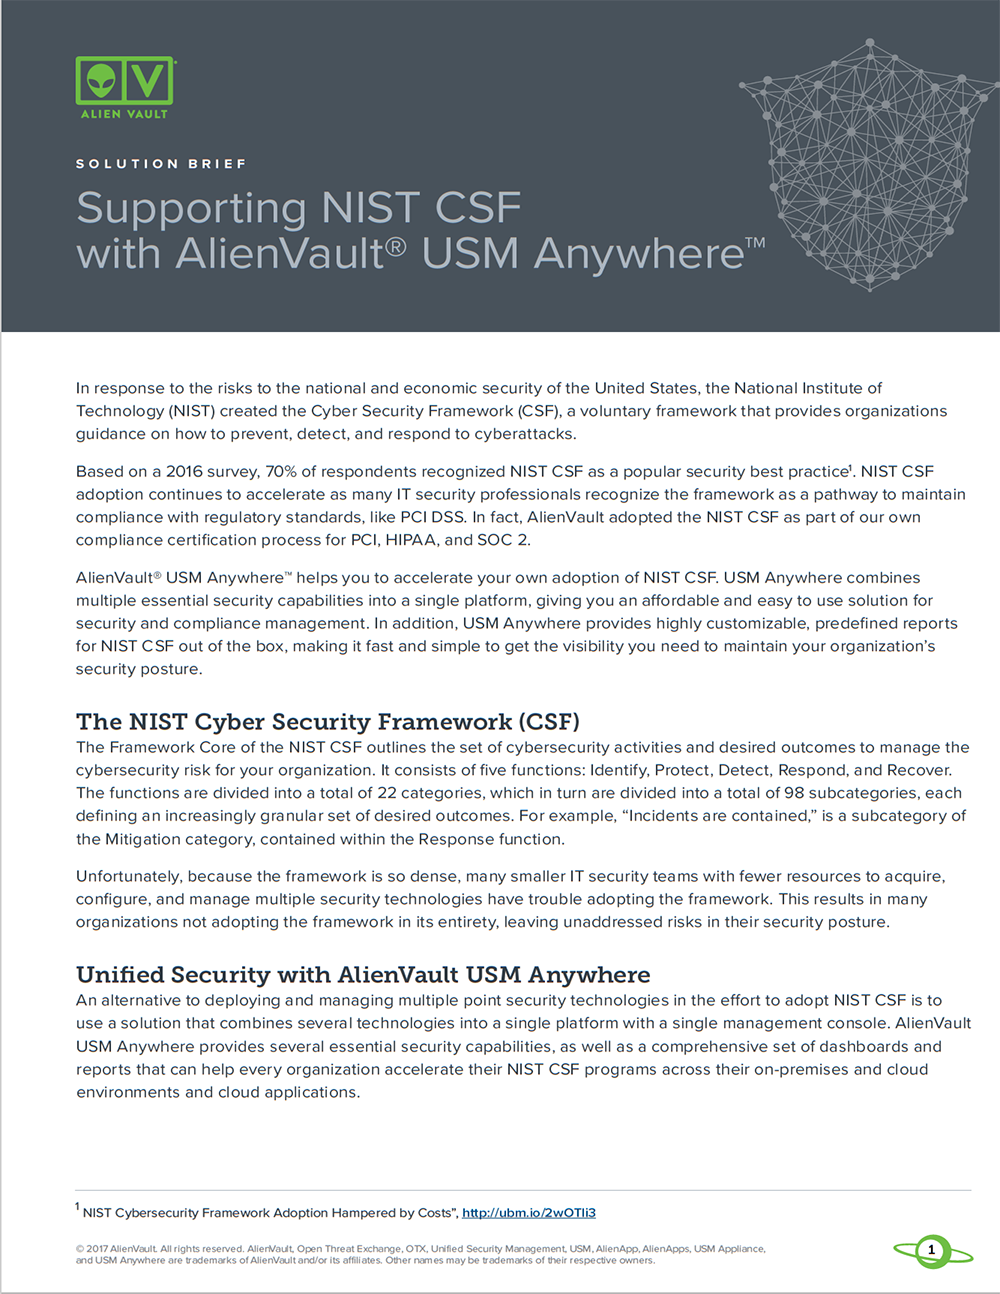 NIST Cybersecurity Framework Compliance With AlienVault